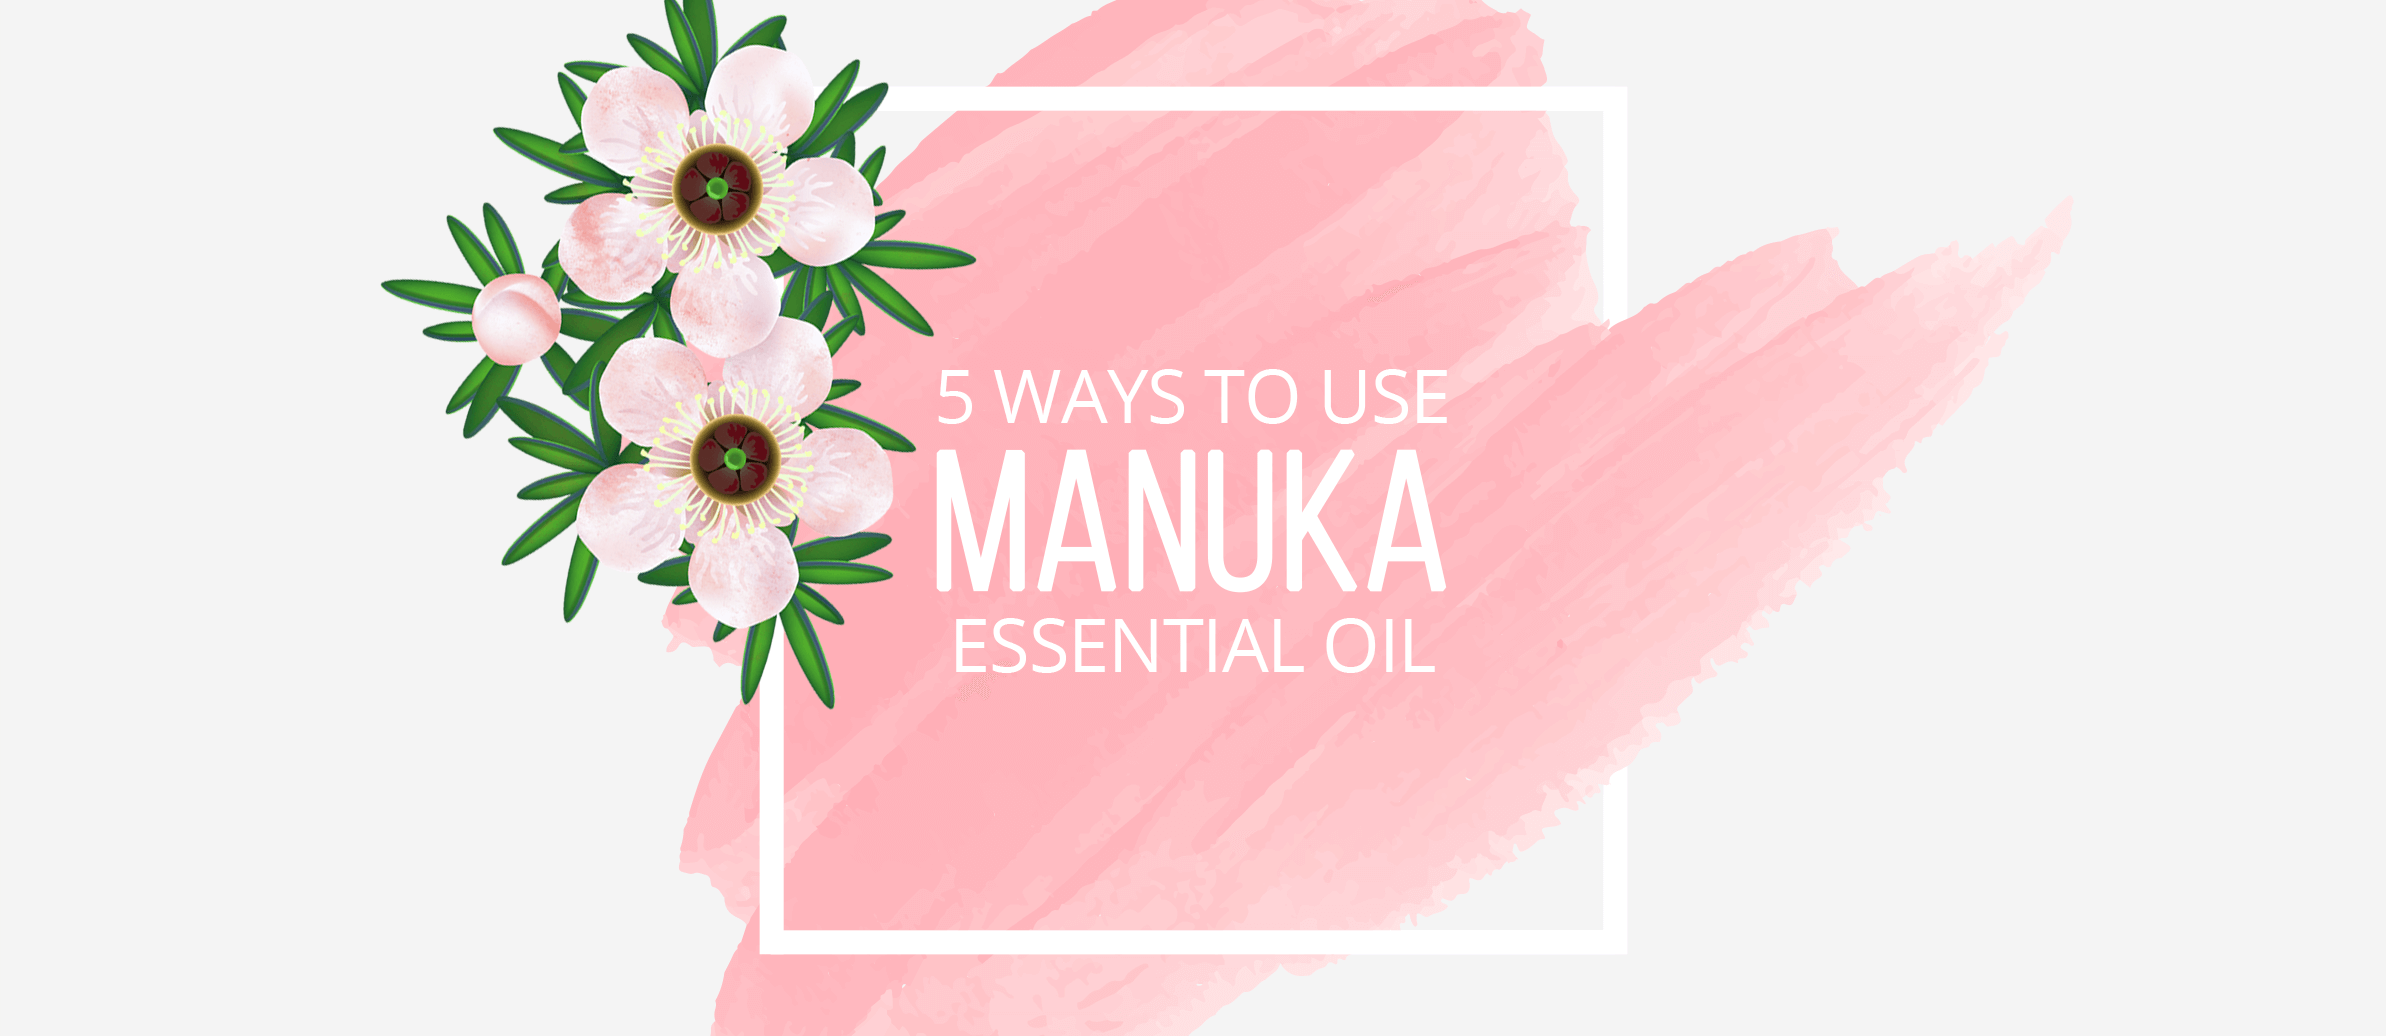 5 Ways to Use Manuka Essential Oil